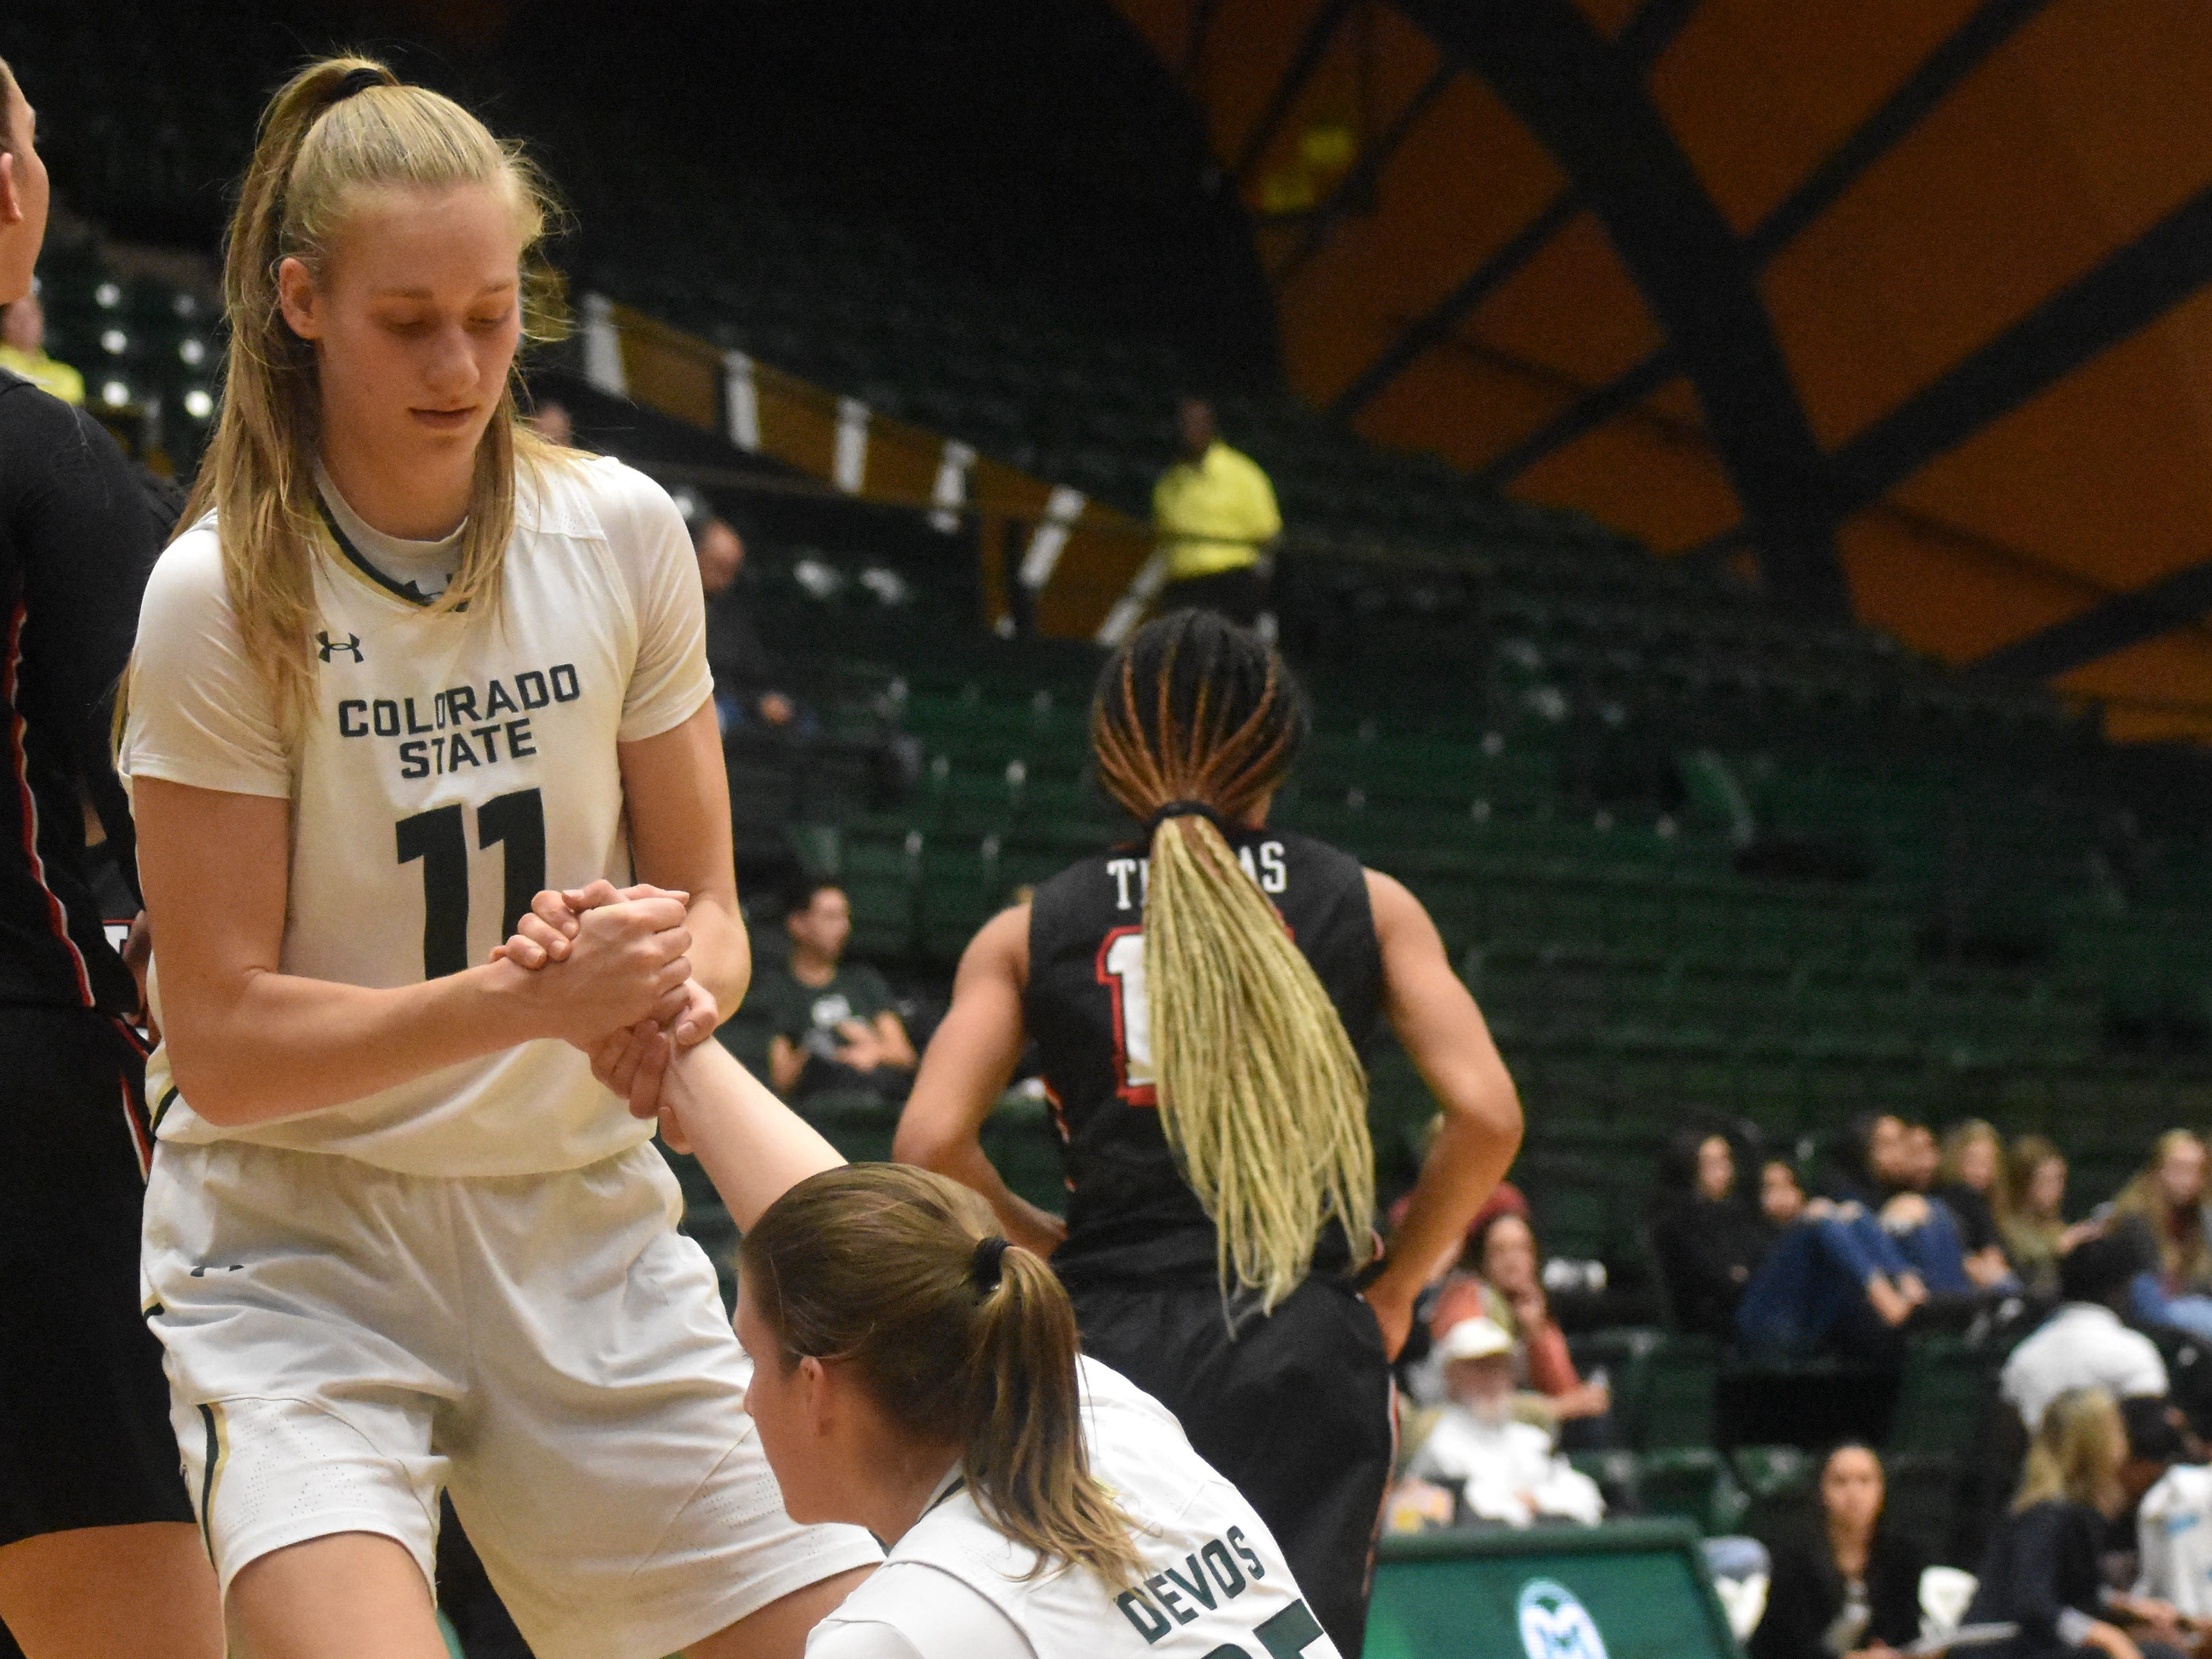 Colorado State basketball center Lena Svanholm helps up teammate Lore Devos during Wednesday's game against UNLV at Moby Arena.